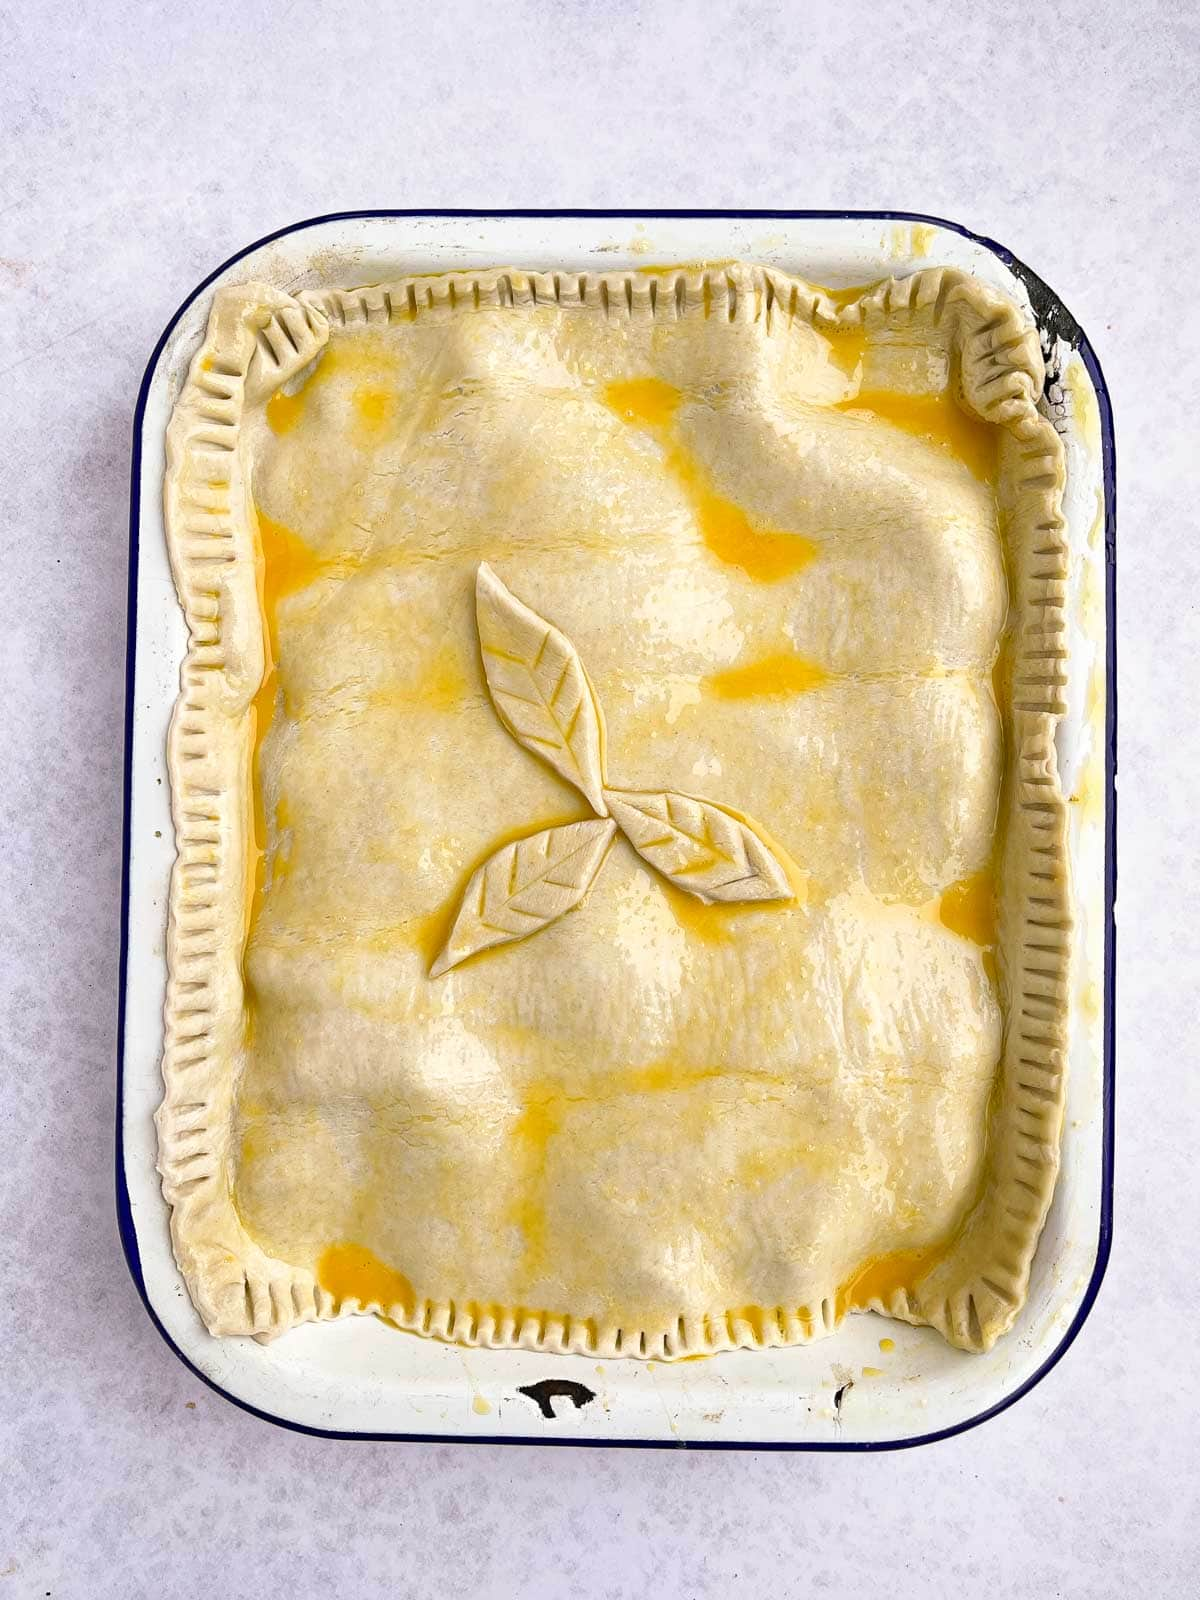 Uncooked beef pie ready for the oven